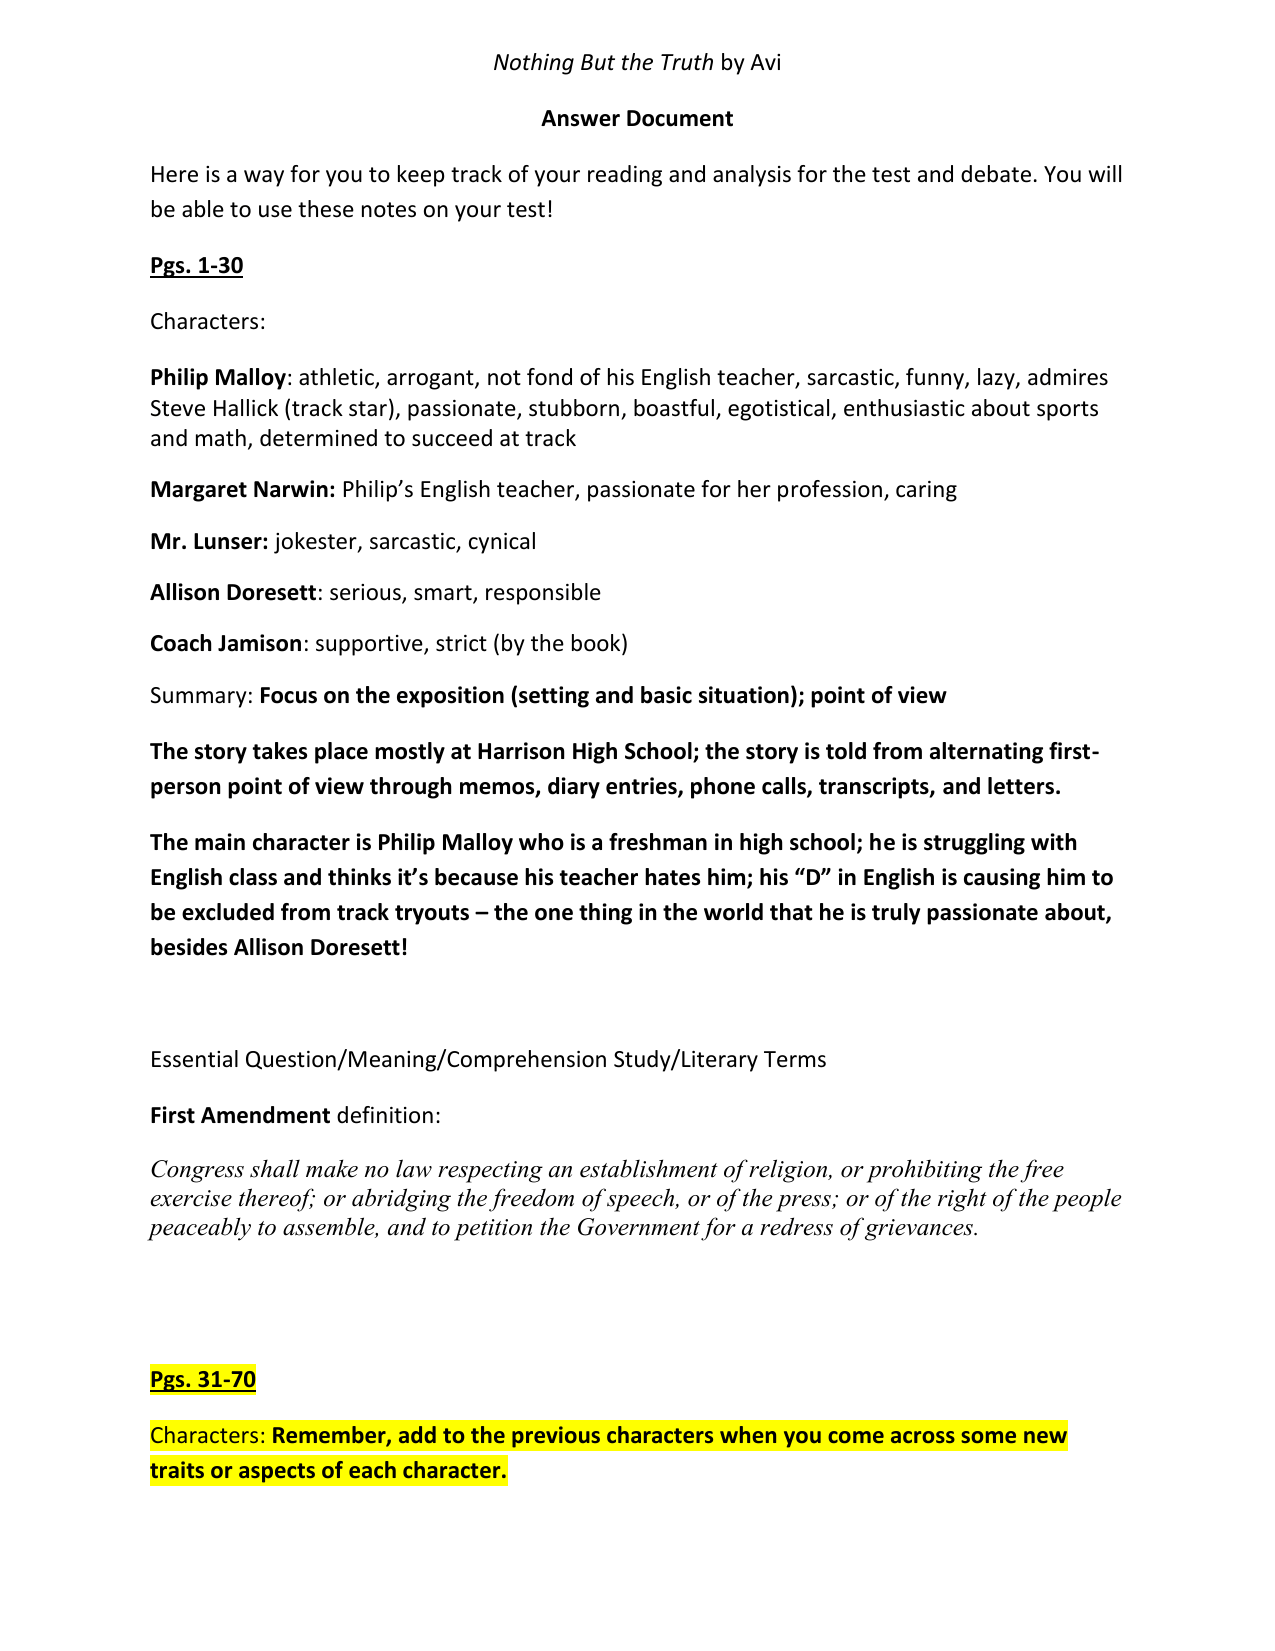 Nothing But The Truth By Avi Answer Document Here Is A Way